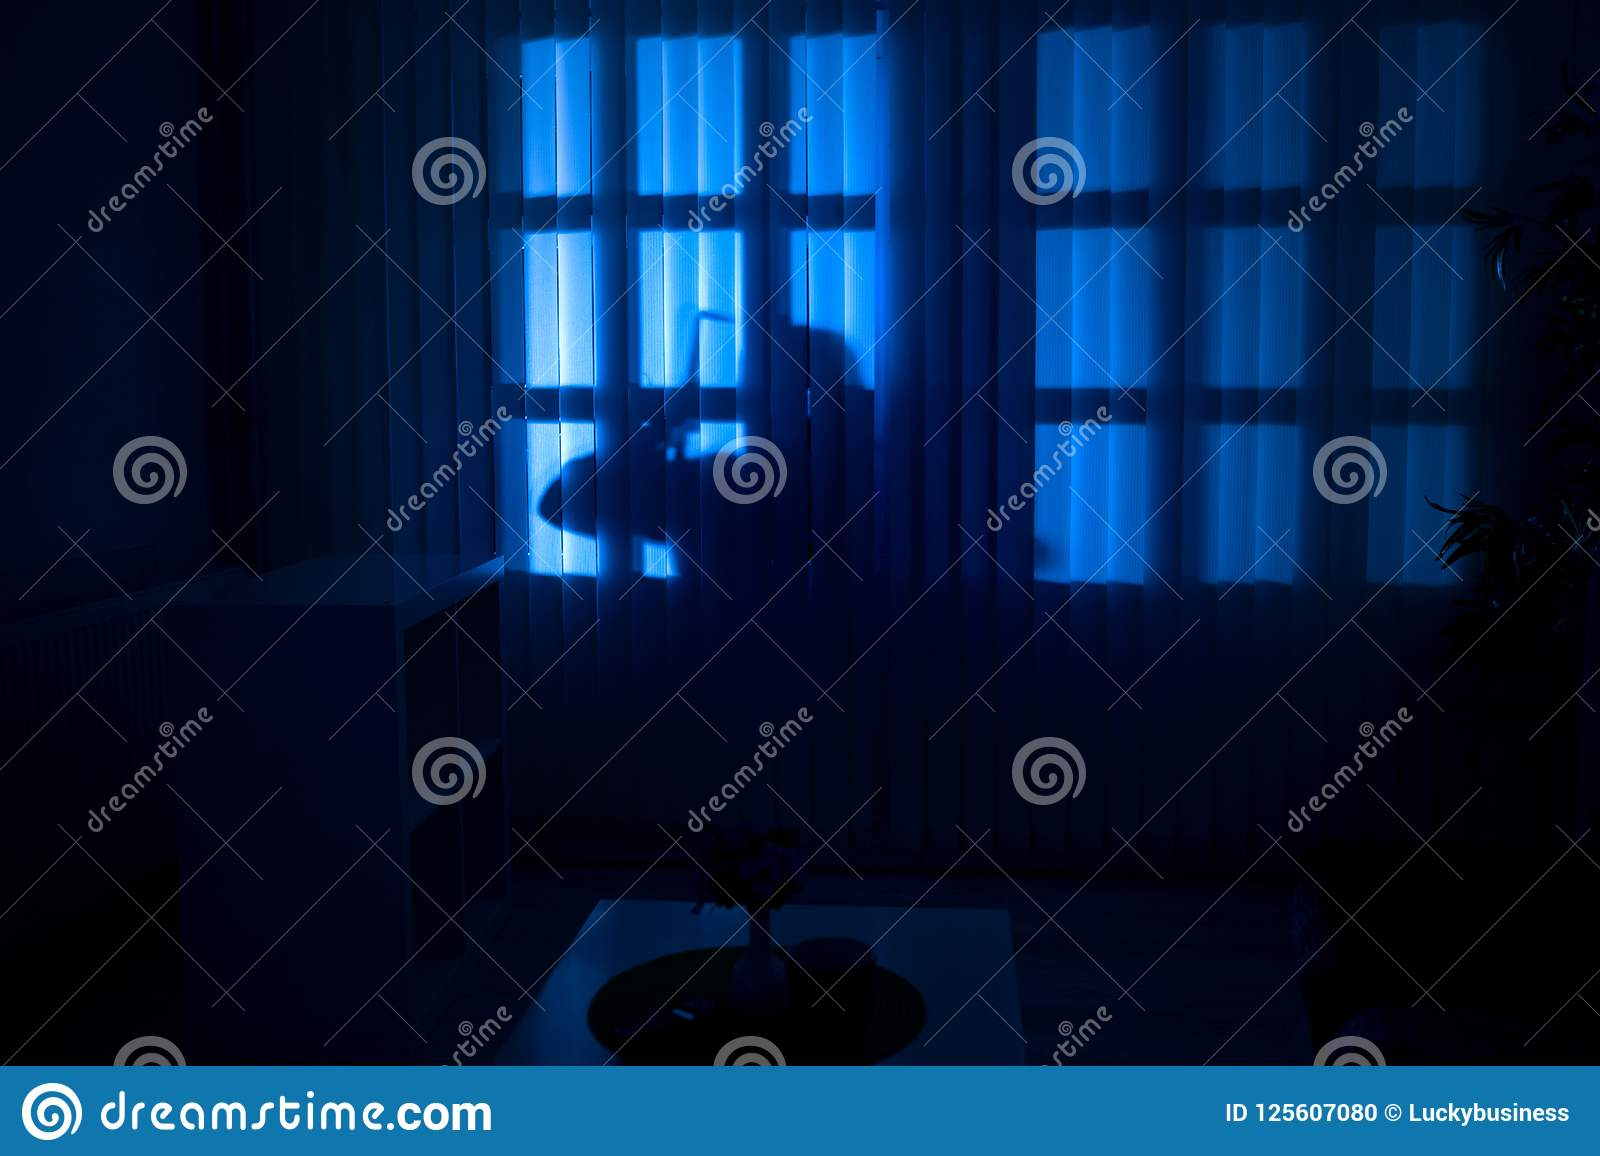 Burglary or thief breaking into a home at night